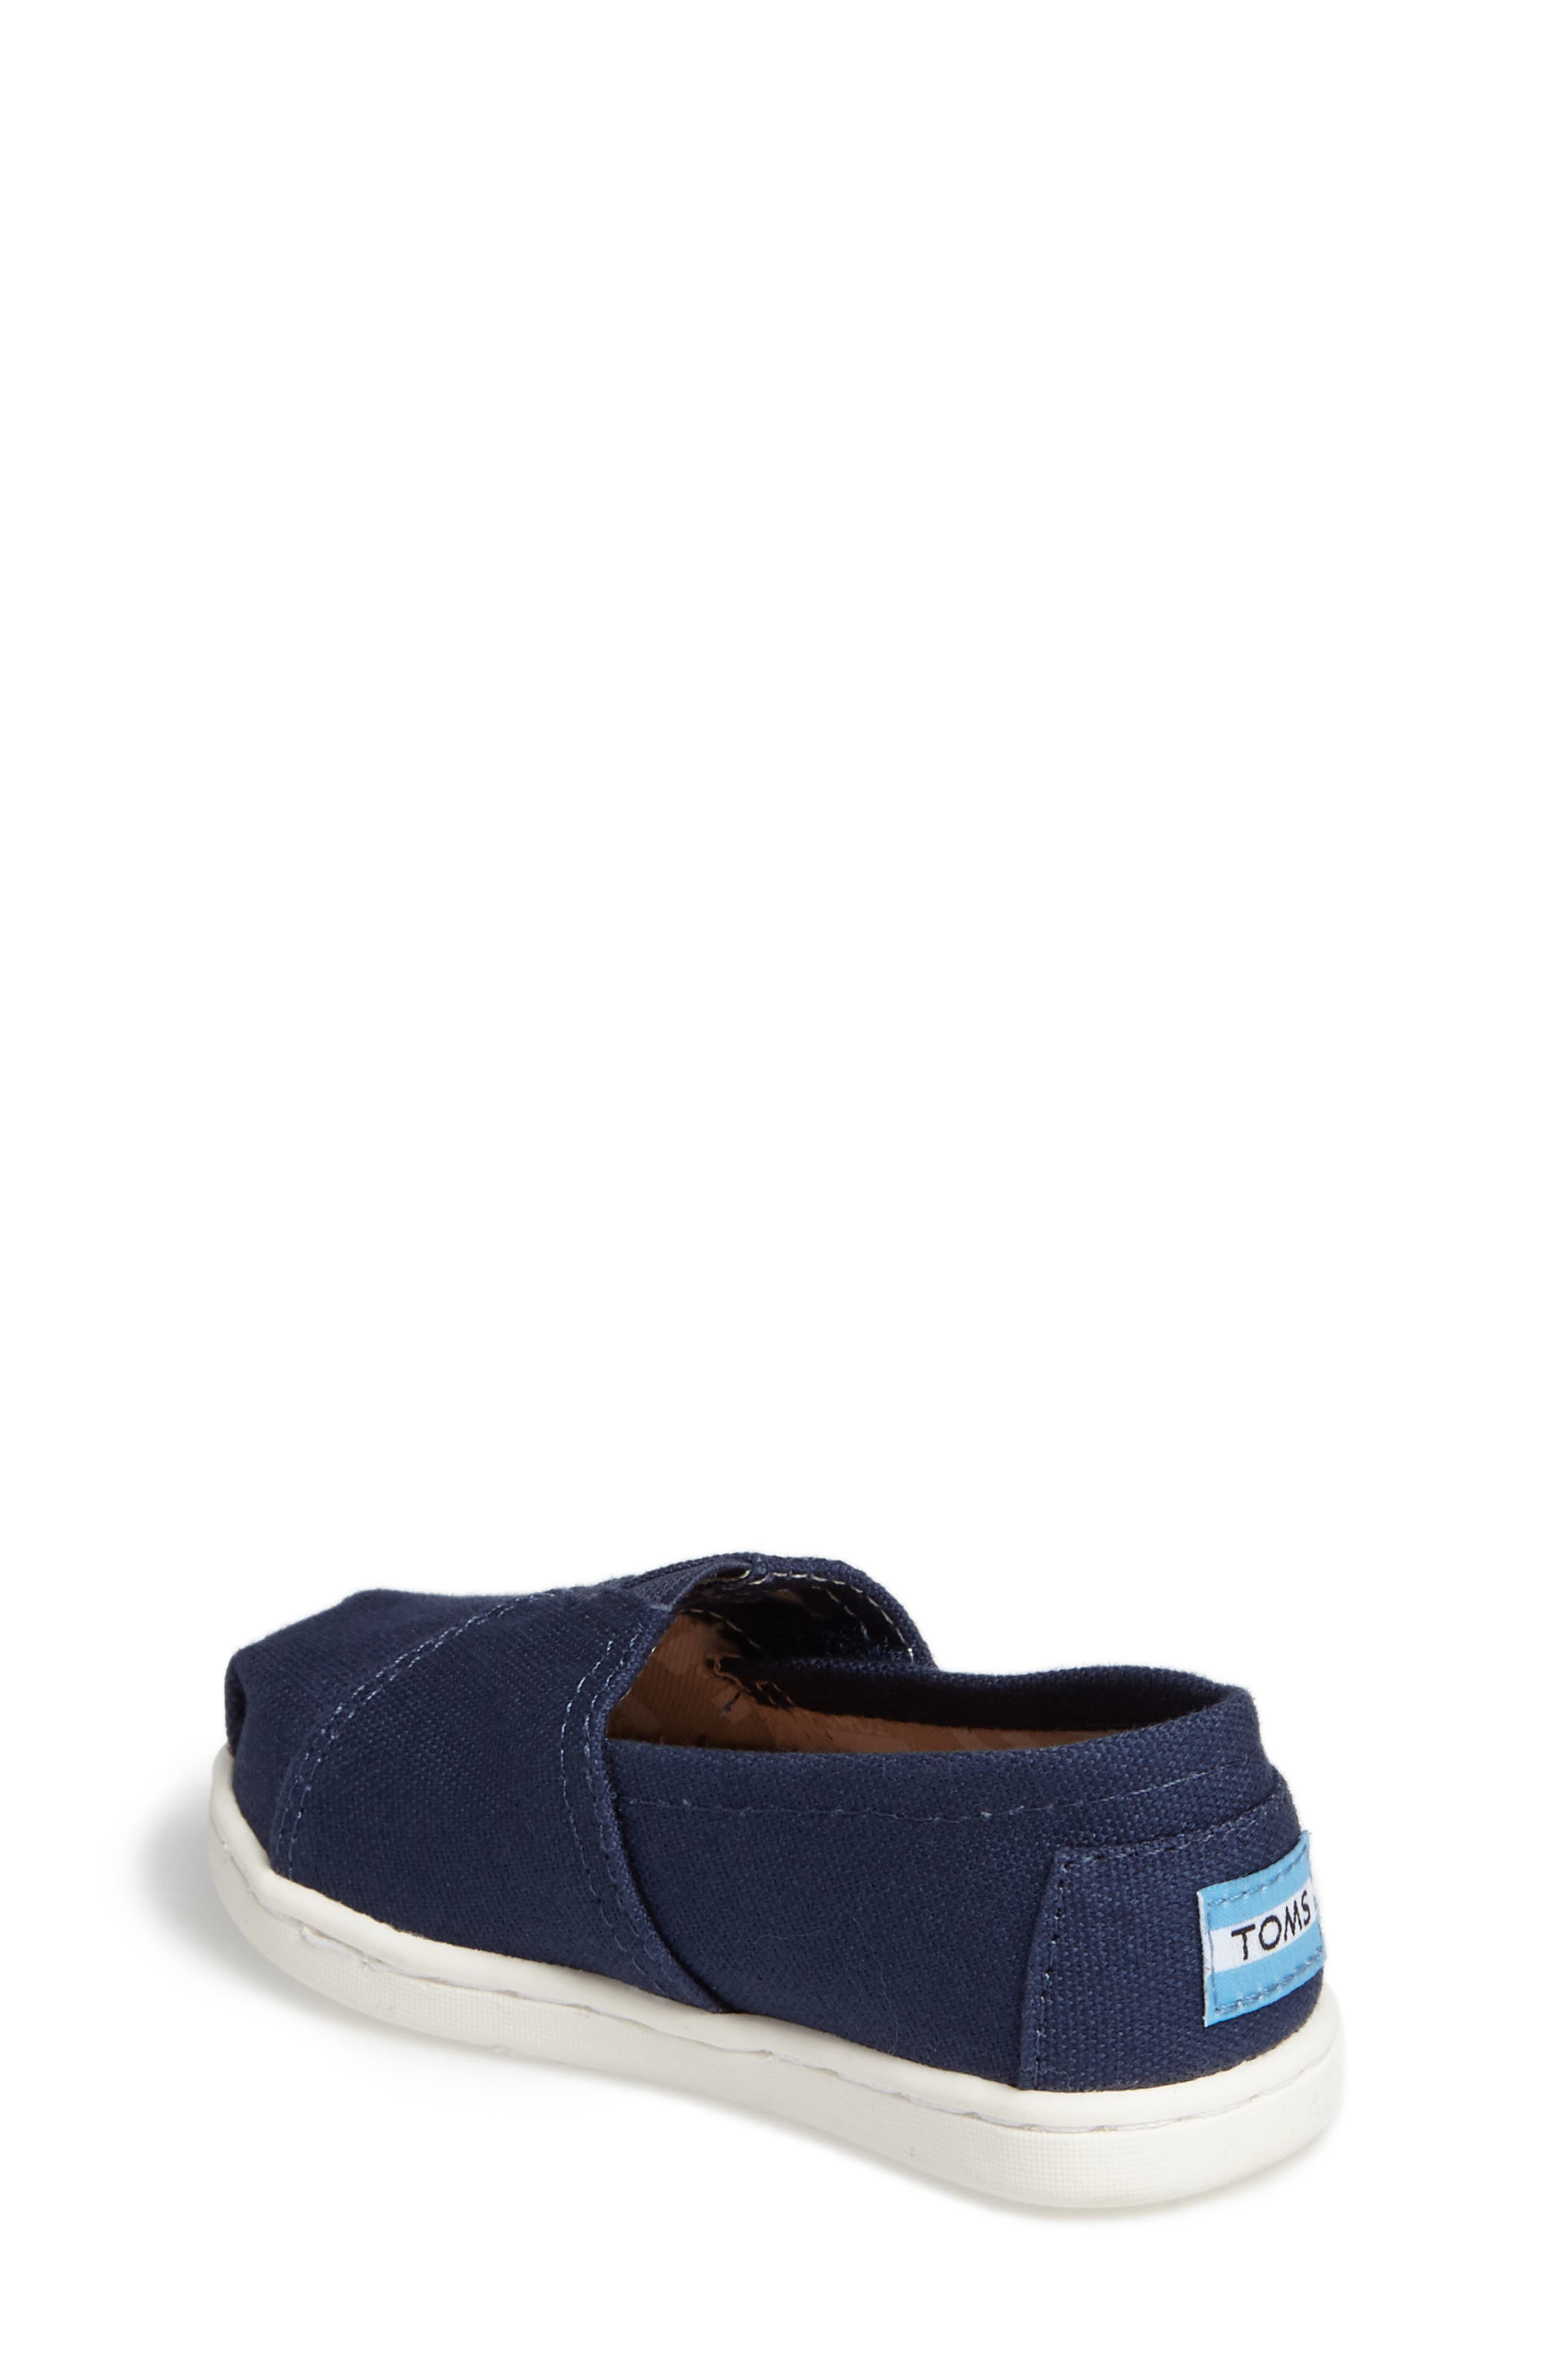 8bbf20b65076f9 Boys  TOMS Shoes